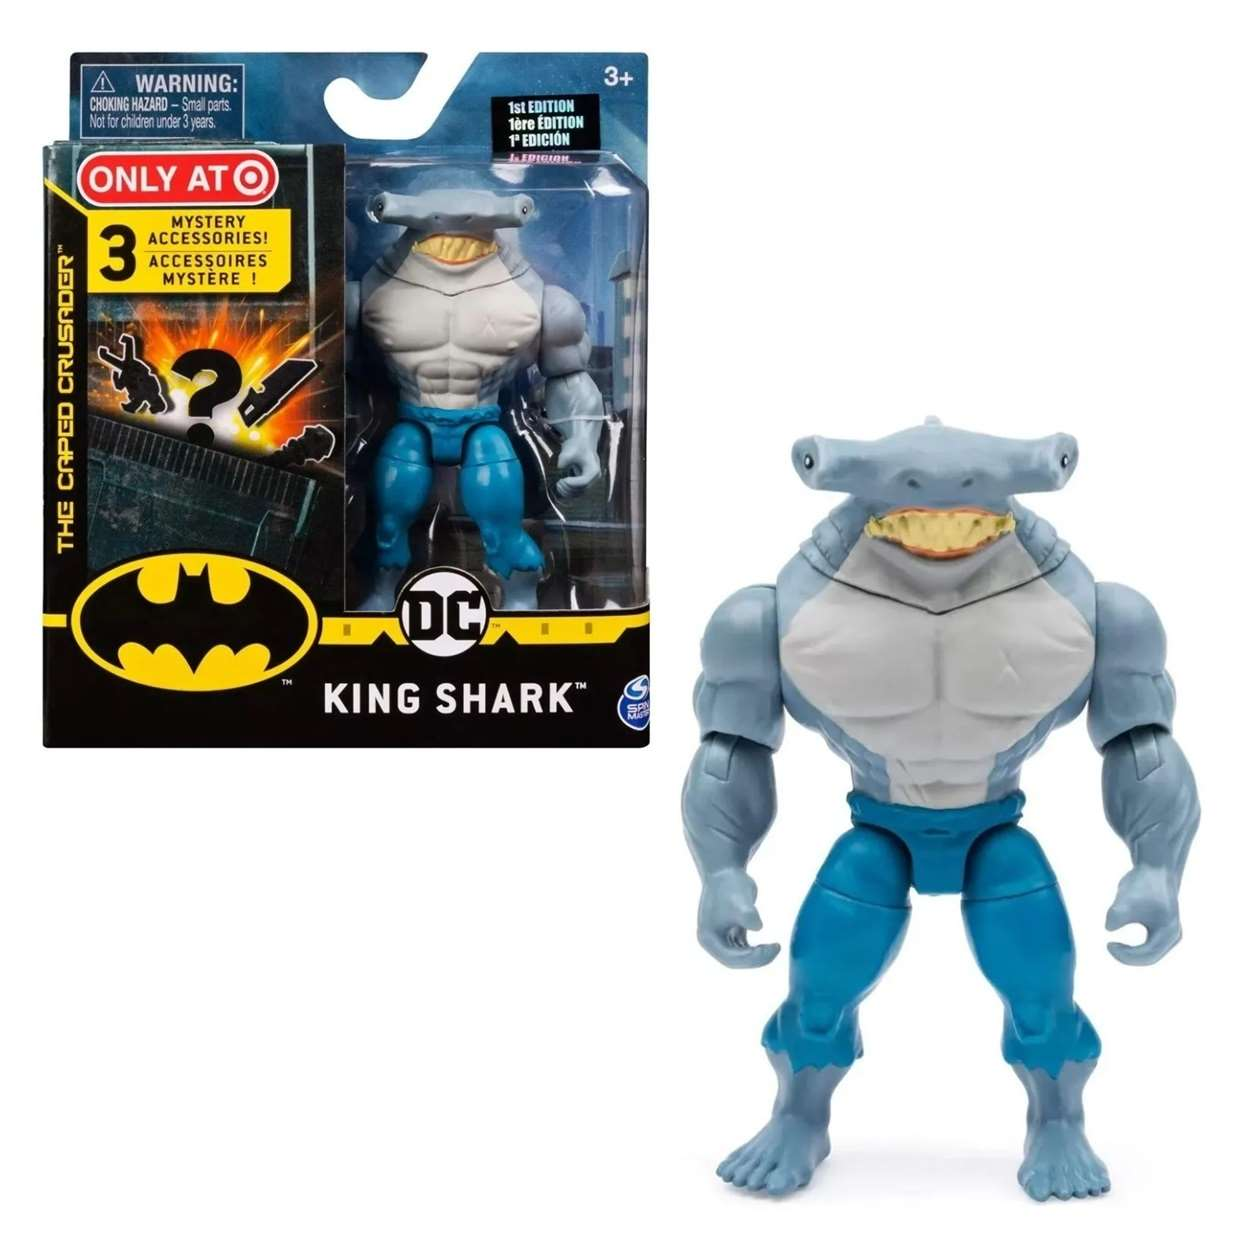 King Shark The Caped Crusader Exclusivo Only Target 3 PuLG